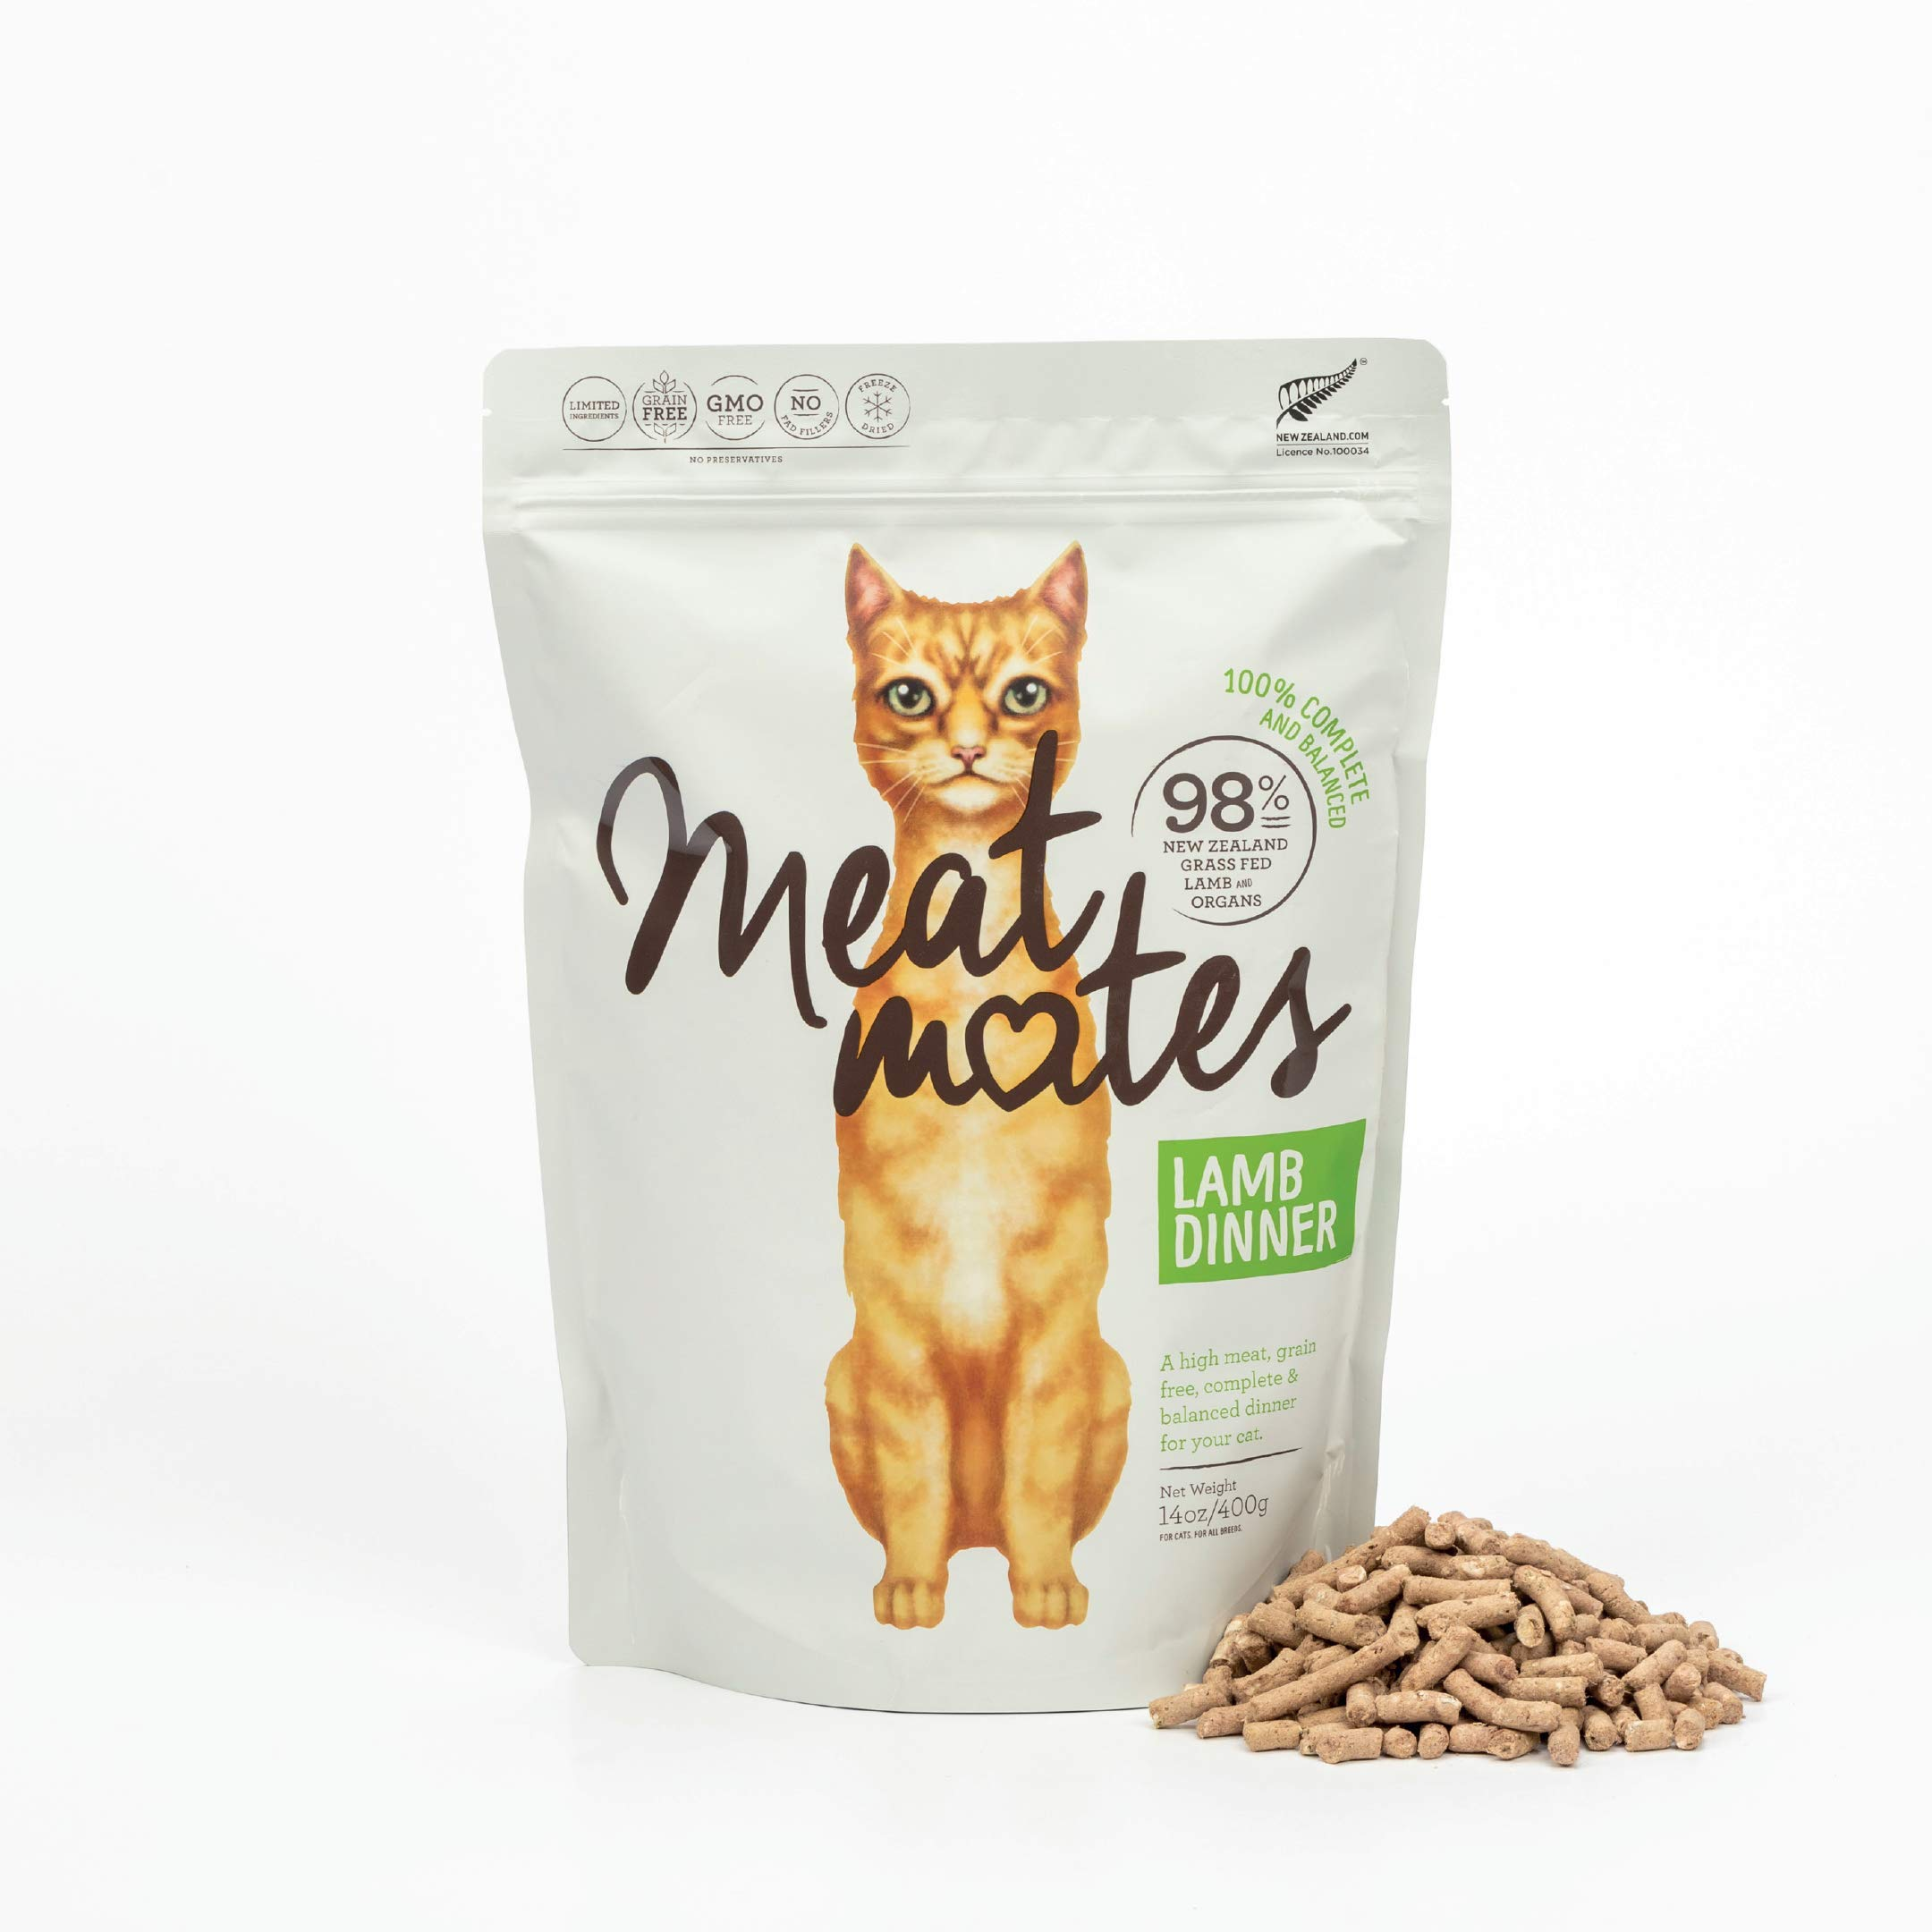 Meat Mates Lamb Dinner, Grain-Free Freeze Dried Cat Food 14oz by Meat Mates